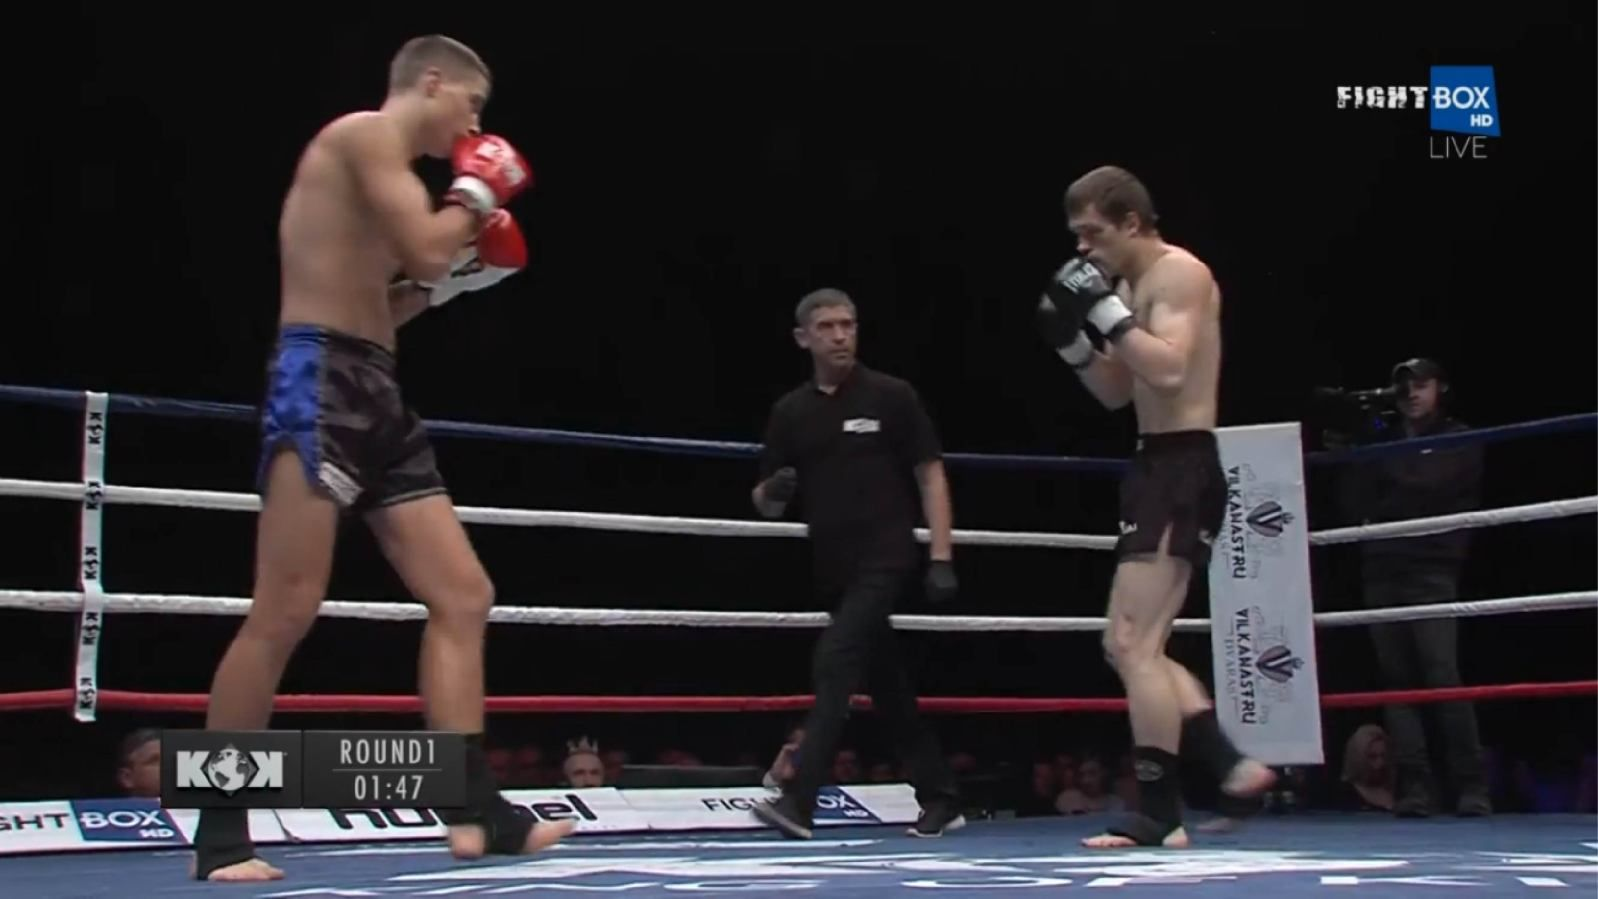 FightBOX HD Free To Air Frequency On Eutelsat 16E